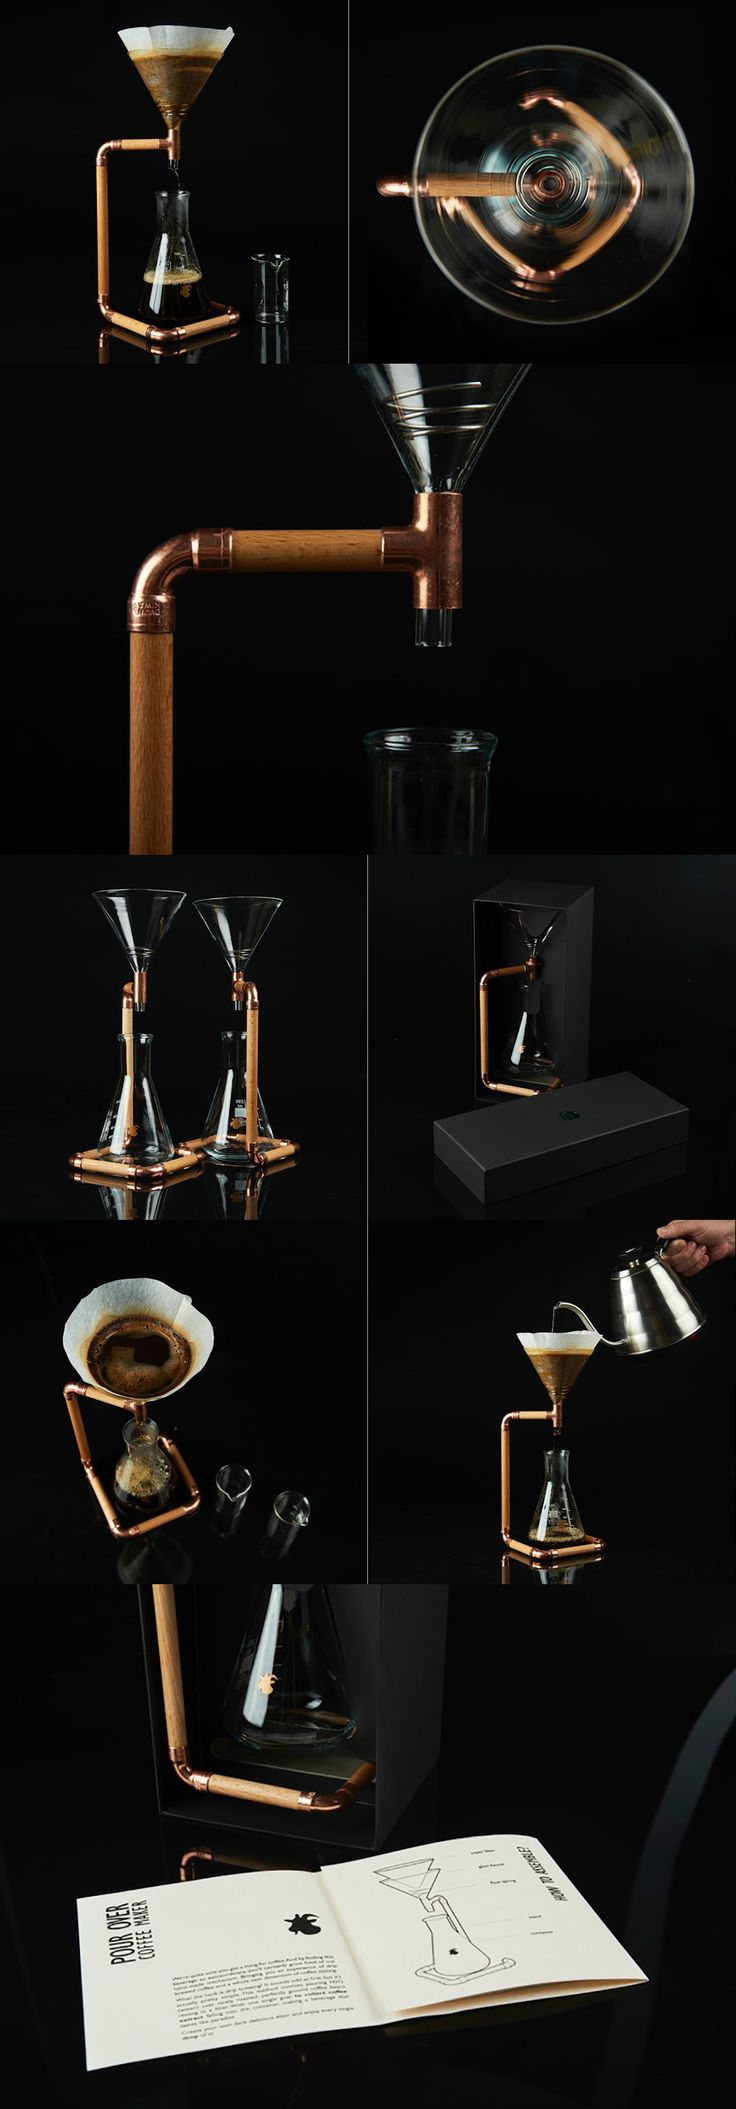 25+ best ideas about Drip Coffee Maker on Pinterest Drip coffee, Maker shop and Coffee pour ...